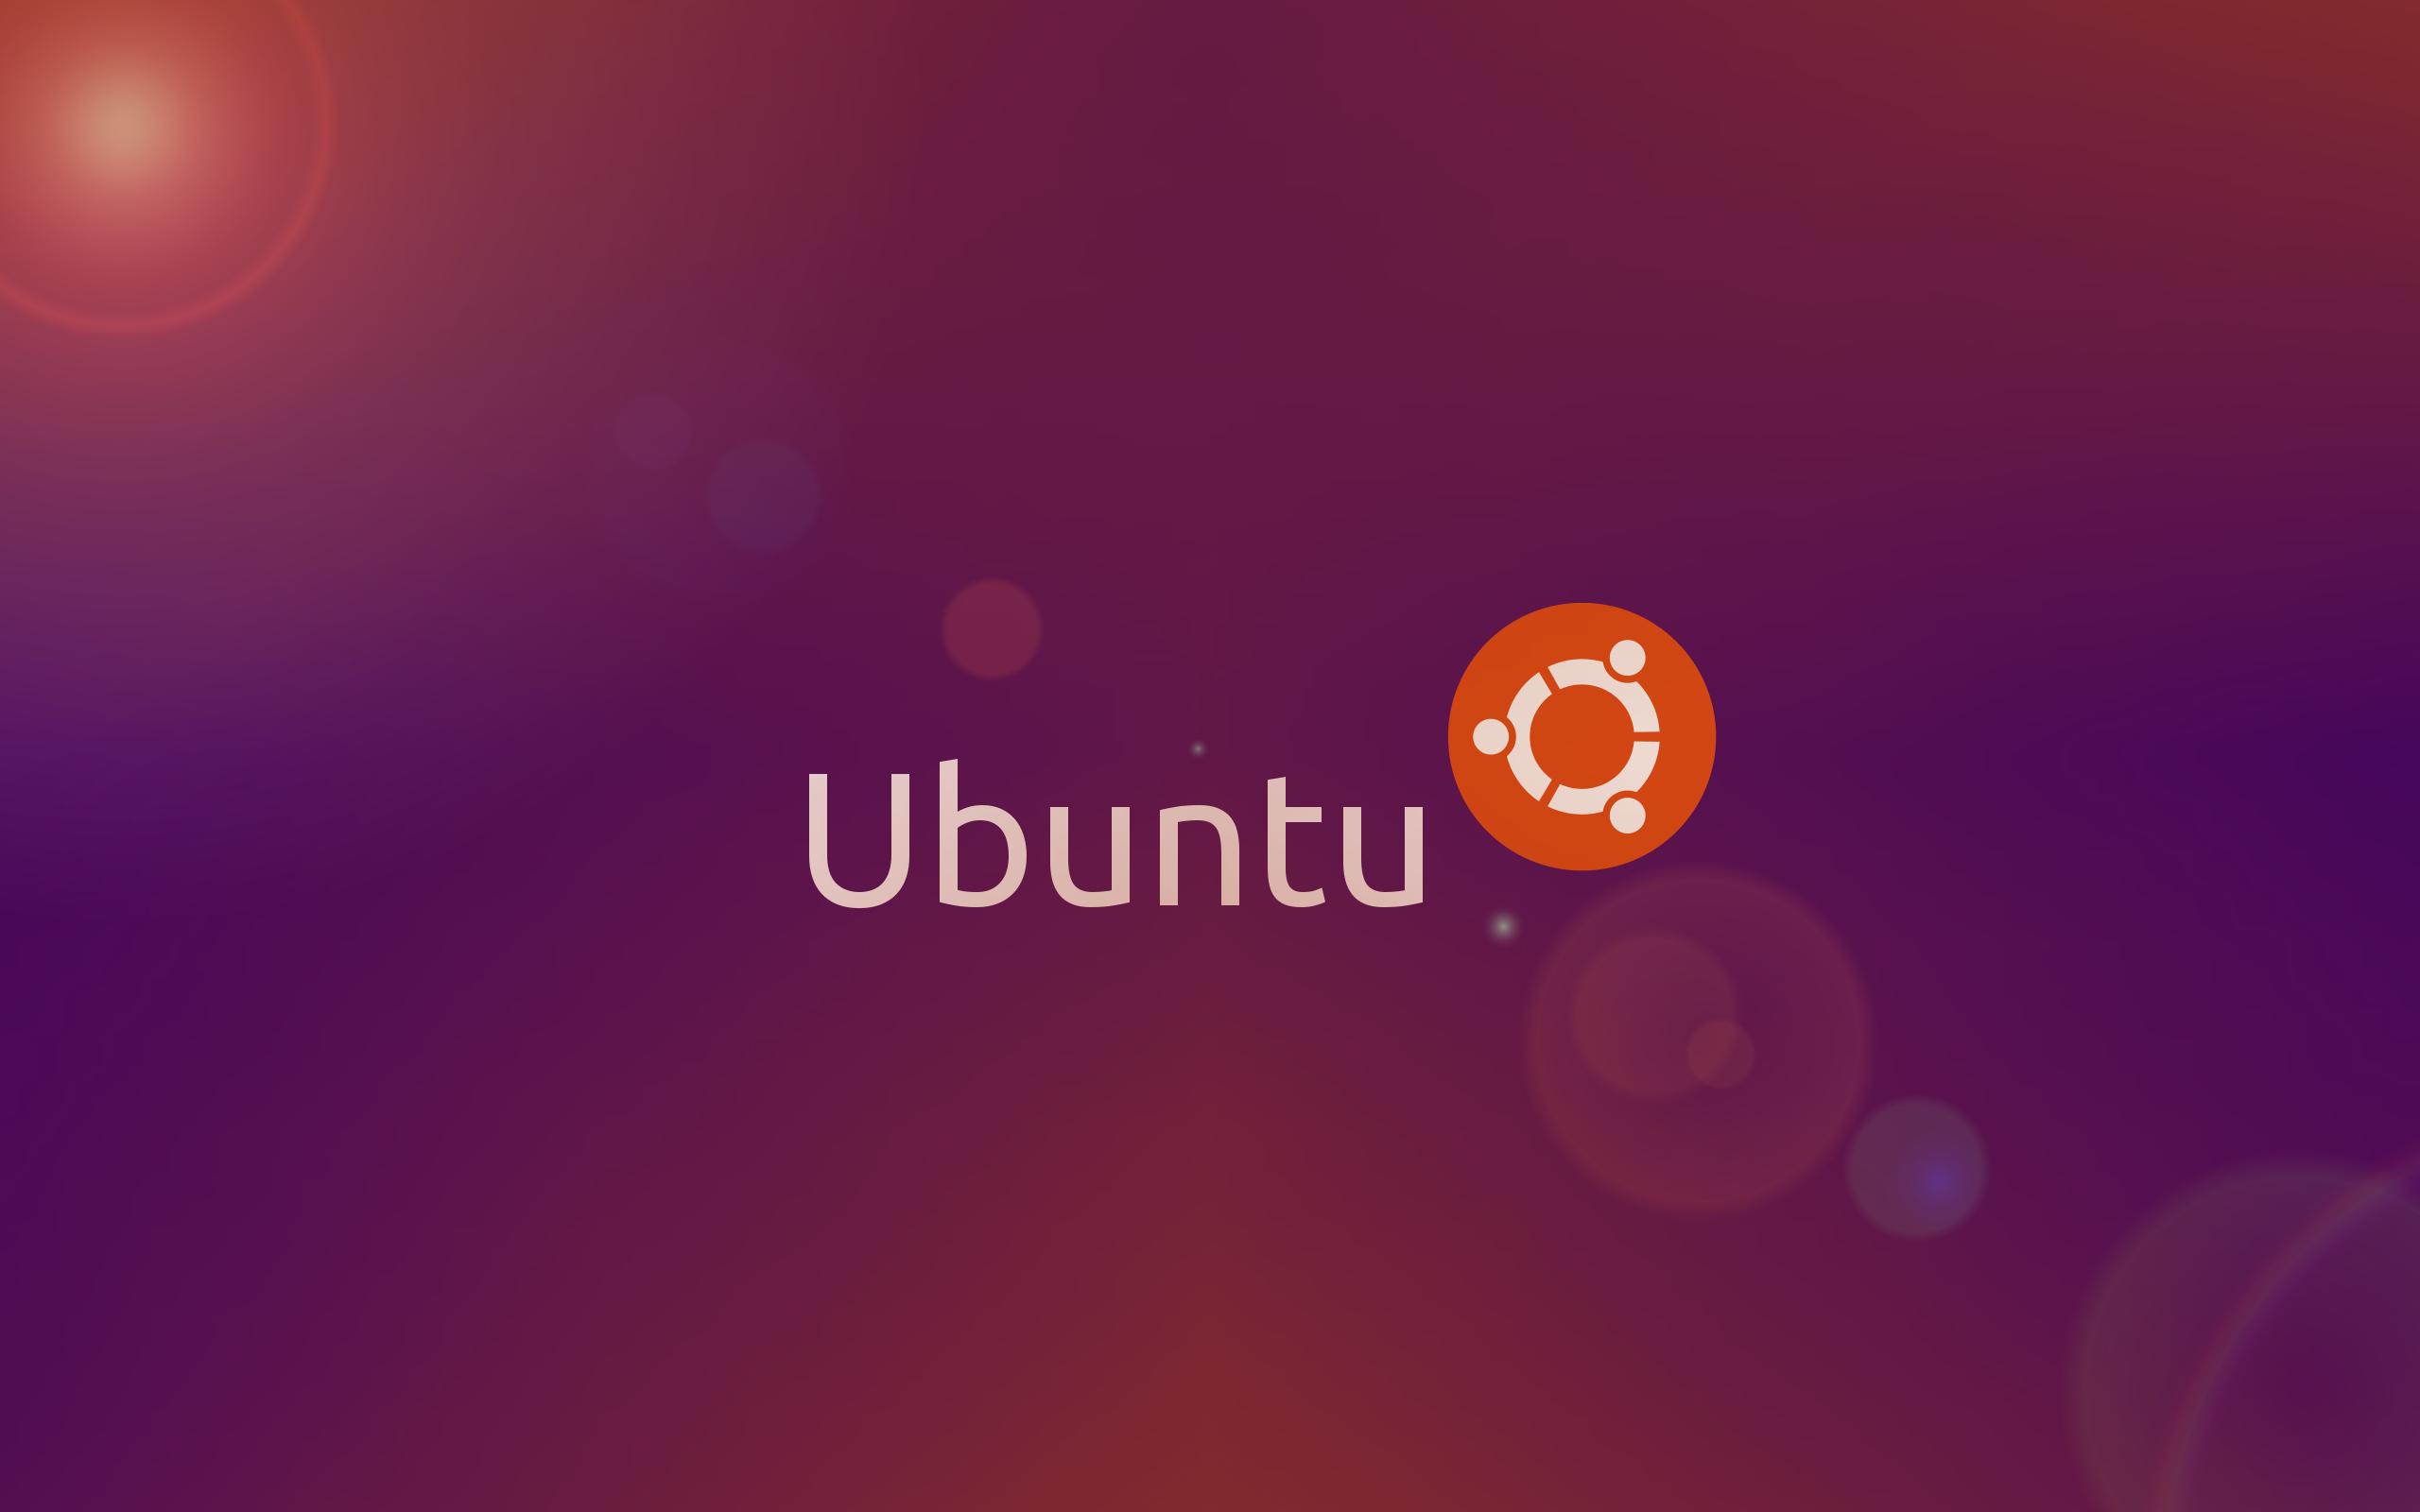 Ubuntu 25602151600 Wallpaper 2168134 2560x1600